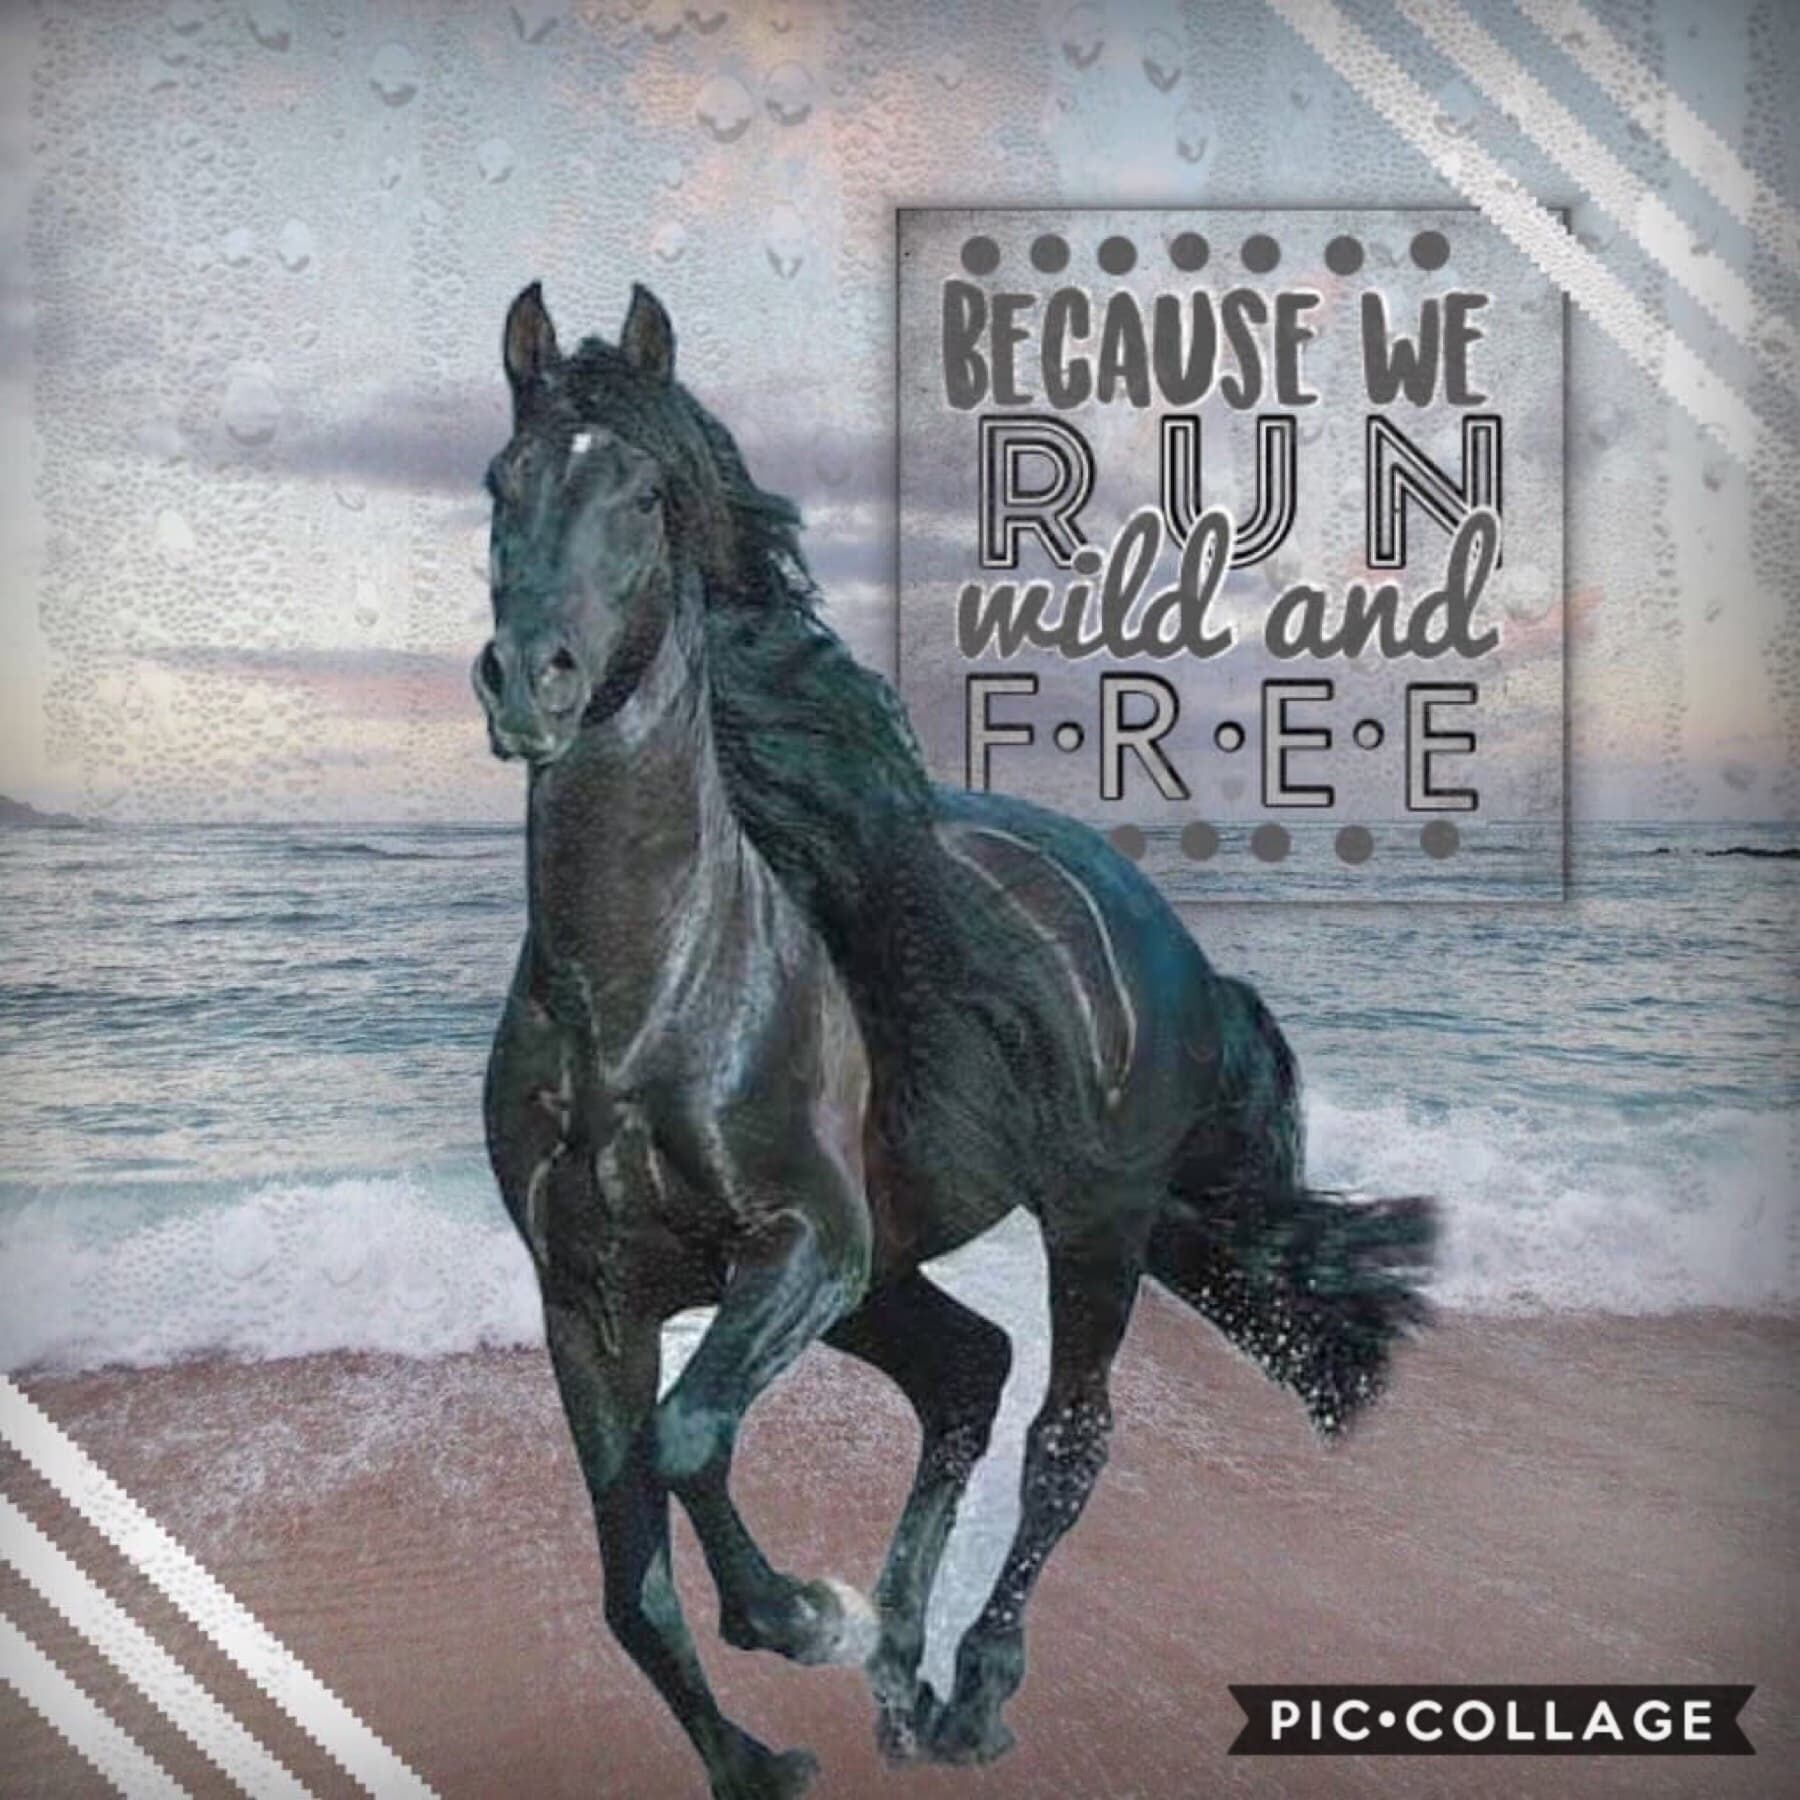 My entry to a contest! The picture reminds me of The Black Stallion. It's a super good book and movie you should watch or read it!